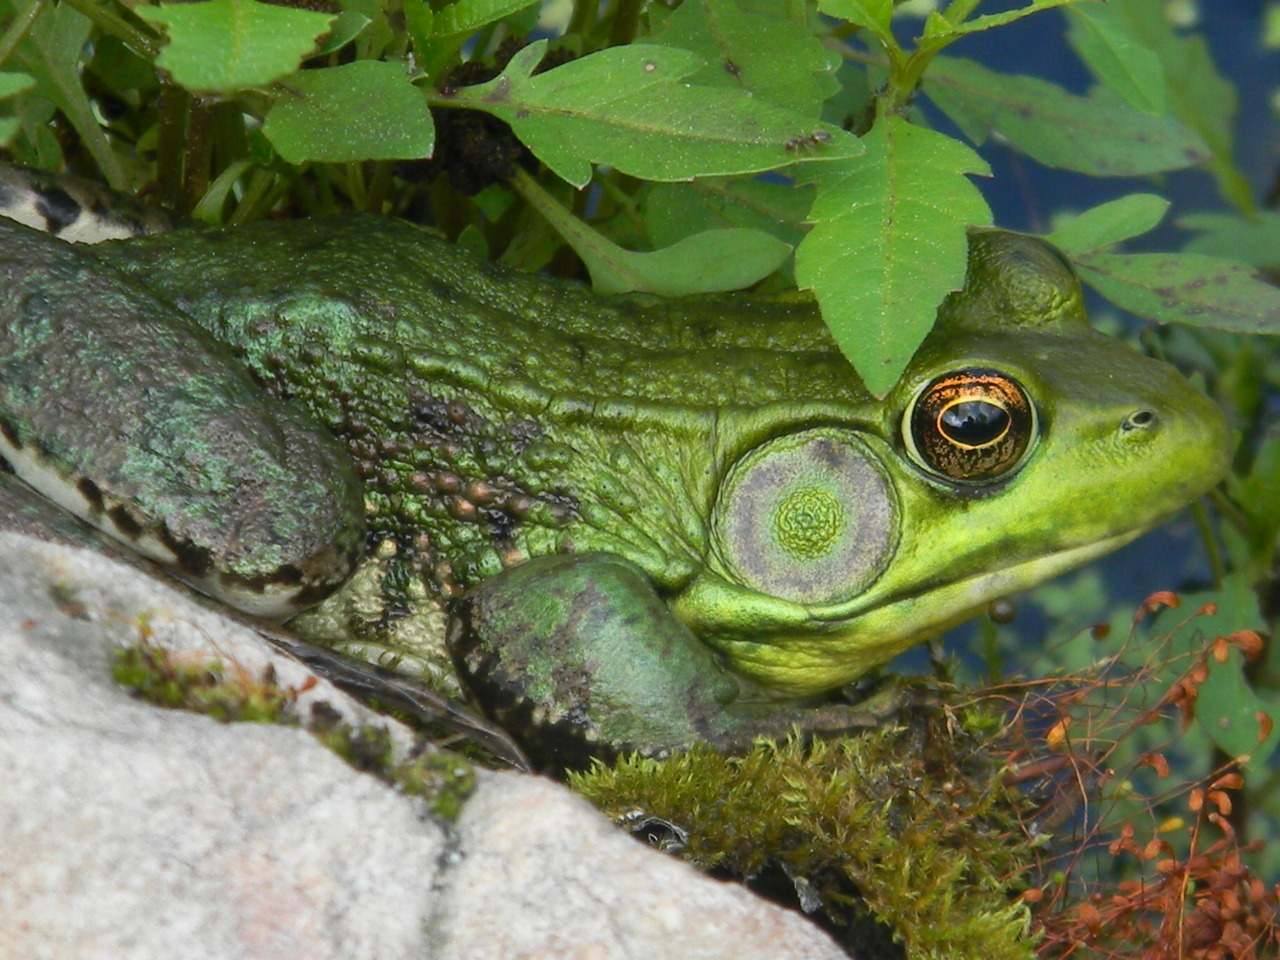 June 14, 2012 If the tympanic membrane of the Green Frog (Rana clamitans)—its external hearing structure—is much larger than the eye, then you know it's a male.  Rana clamitans: that's fun to say out loud!  —photo by Jerod Skebo